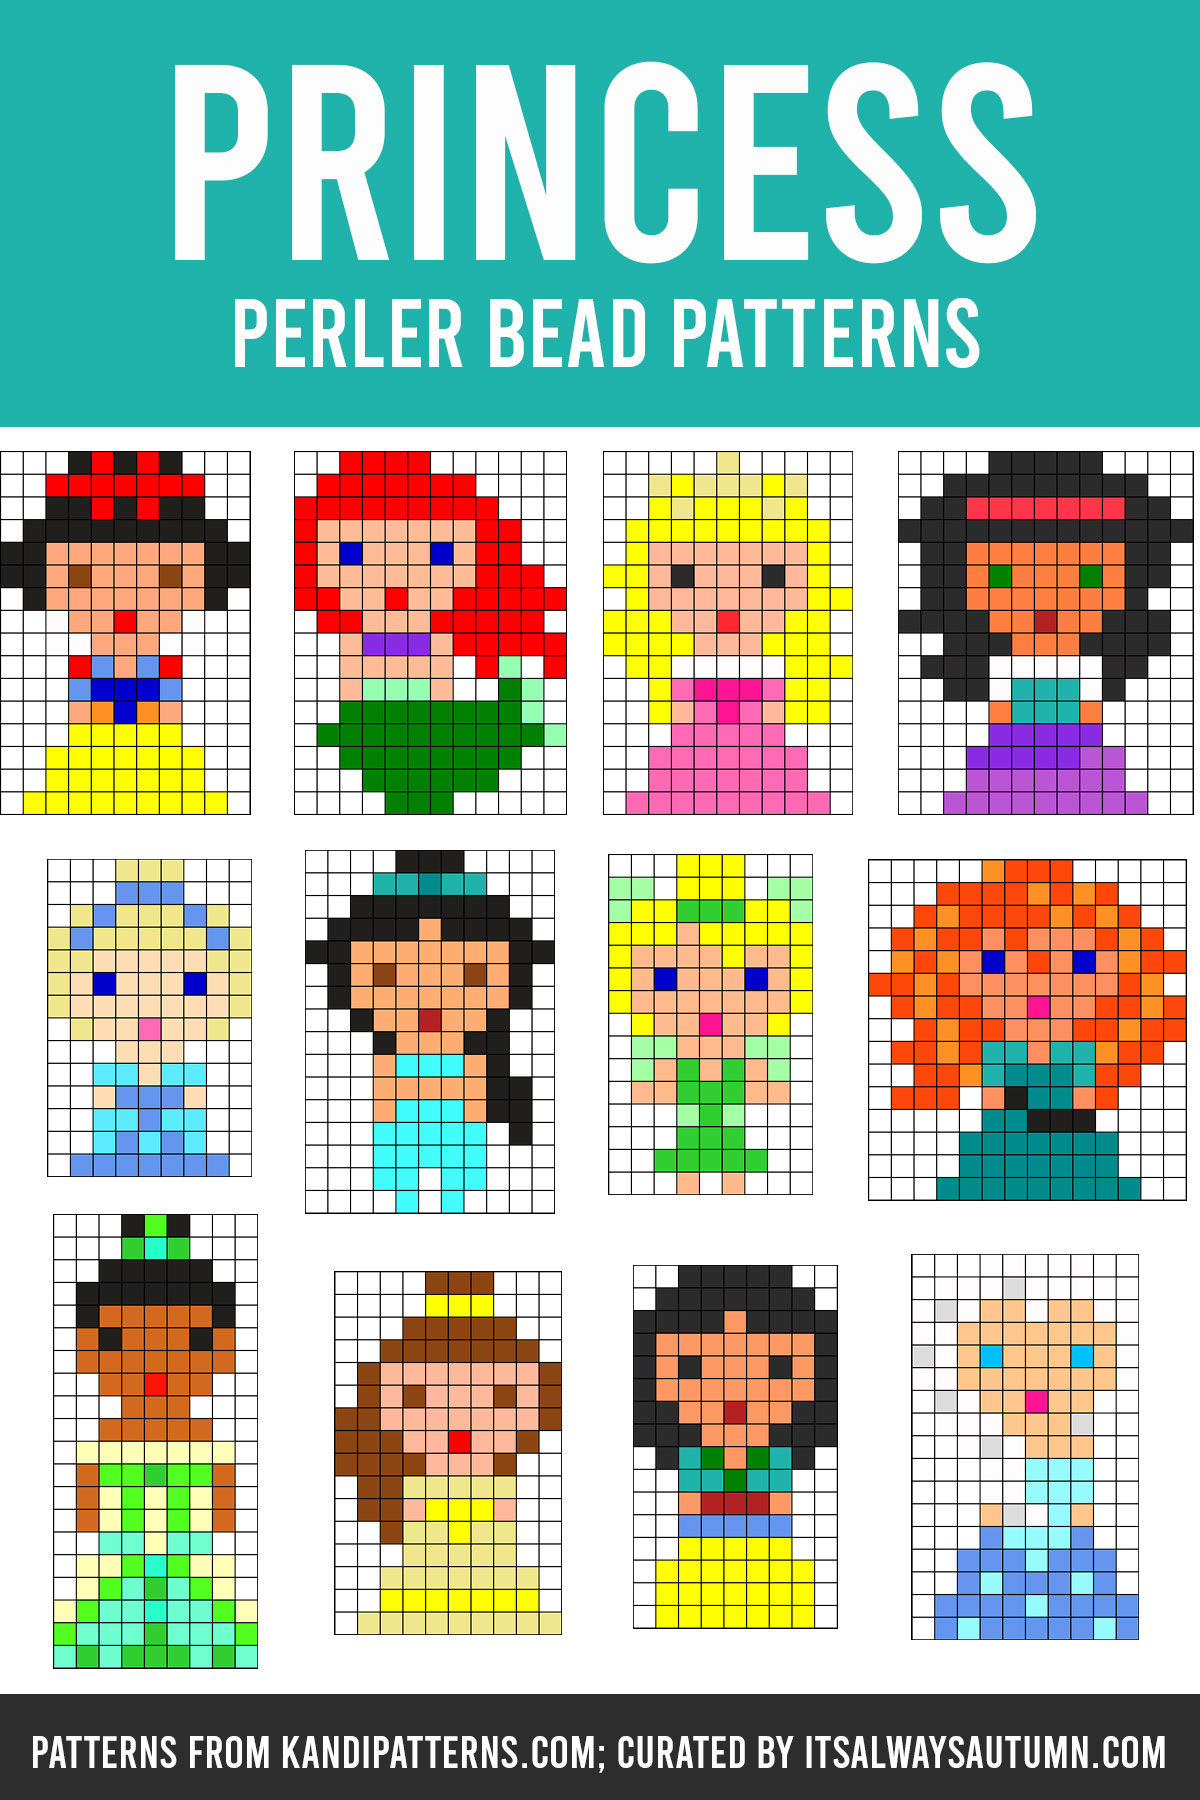 Disney princess Perler bead patterns